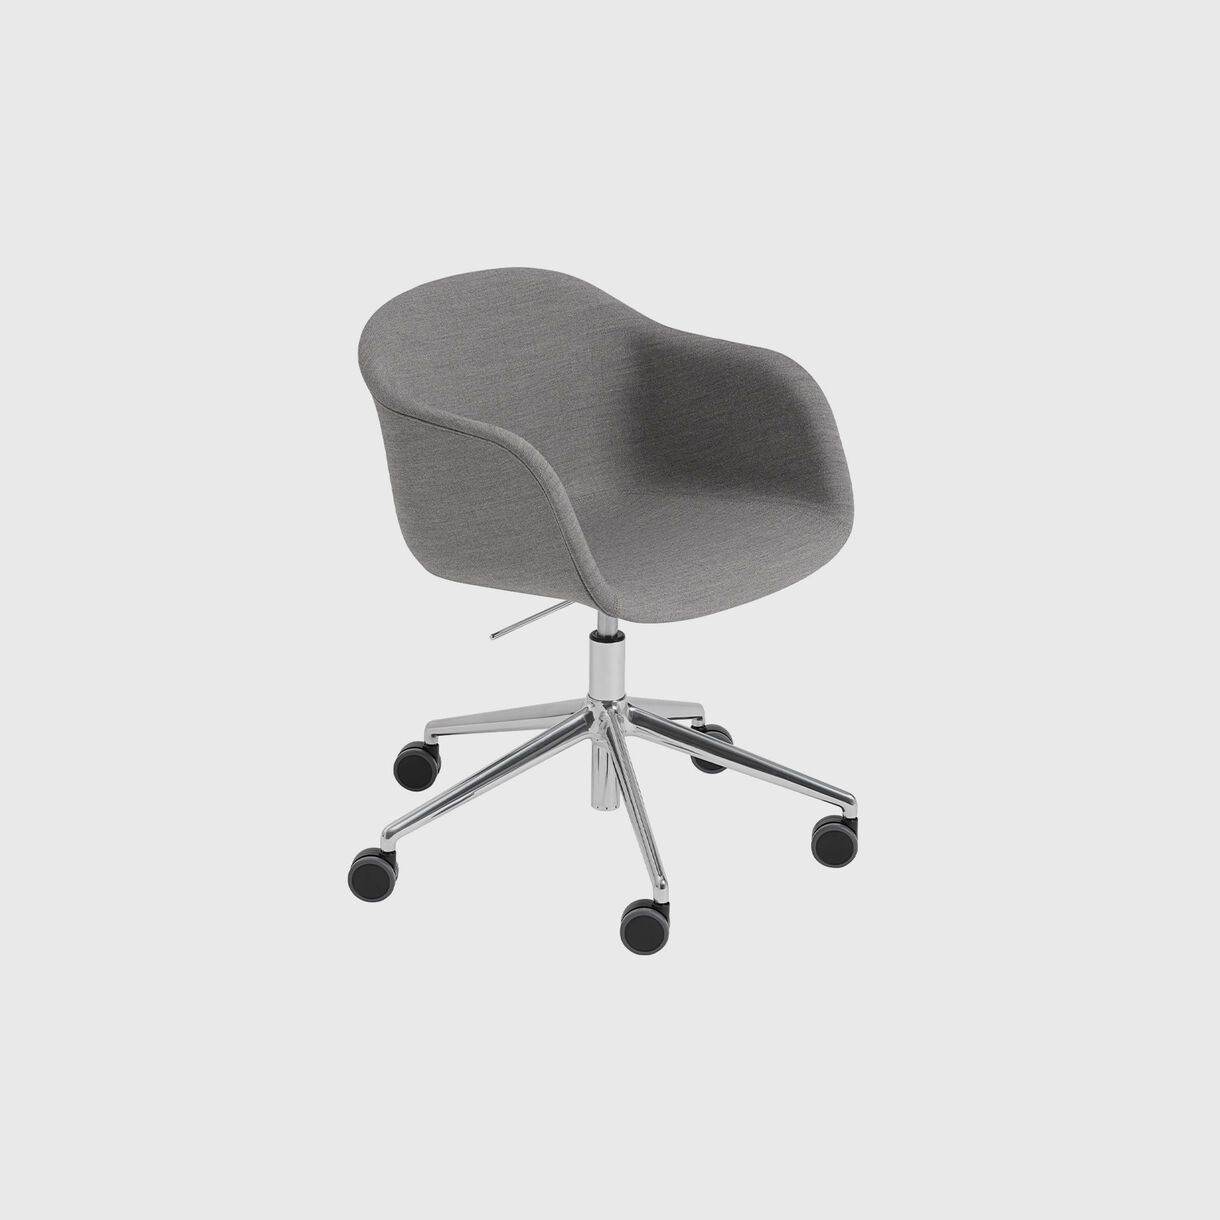 Fiber Armchair Upholstered, Remix 133 & Black, Swivel Base with Castors & Gas Lift, Grey